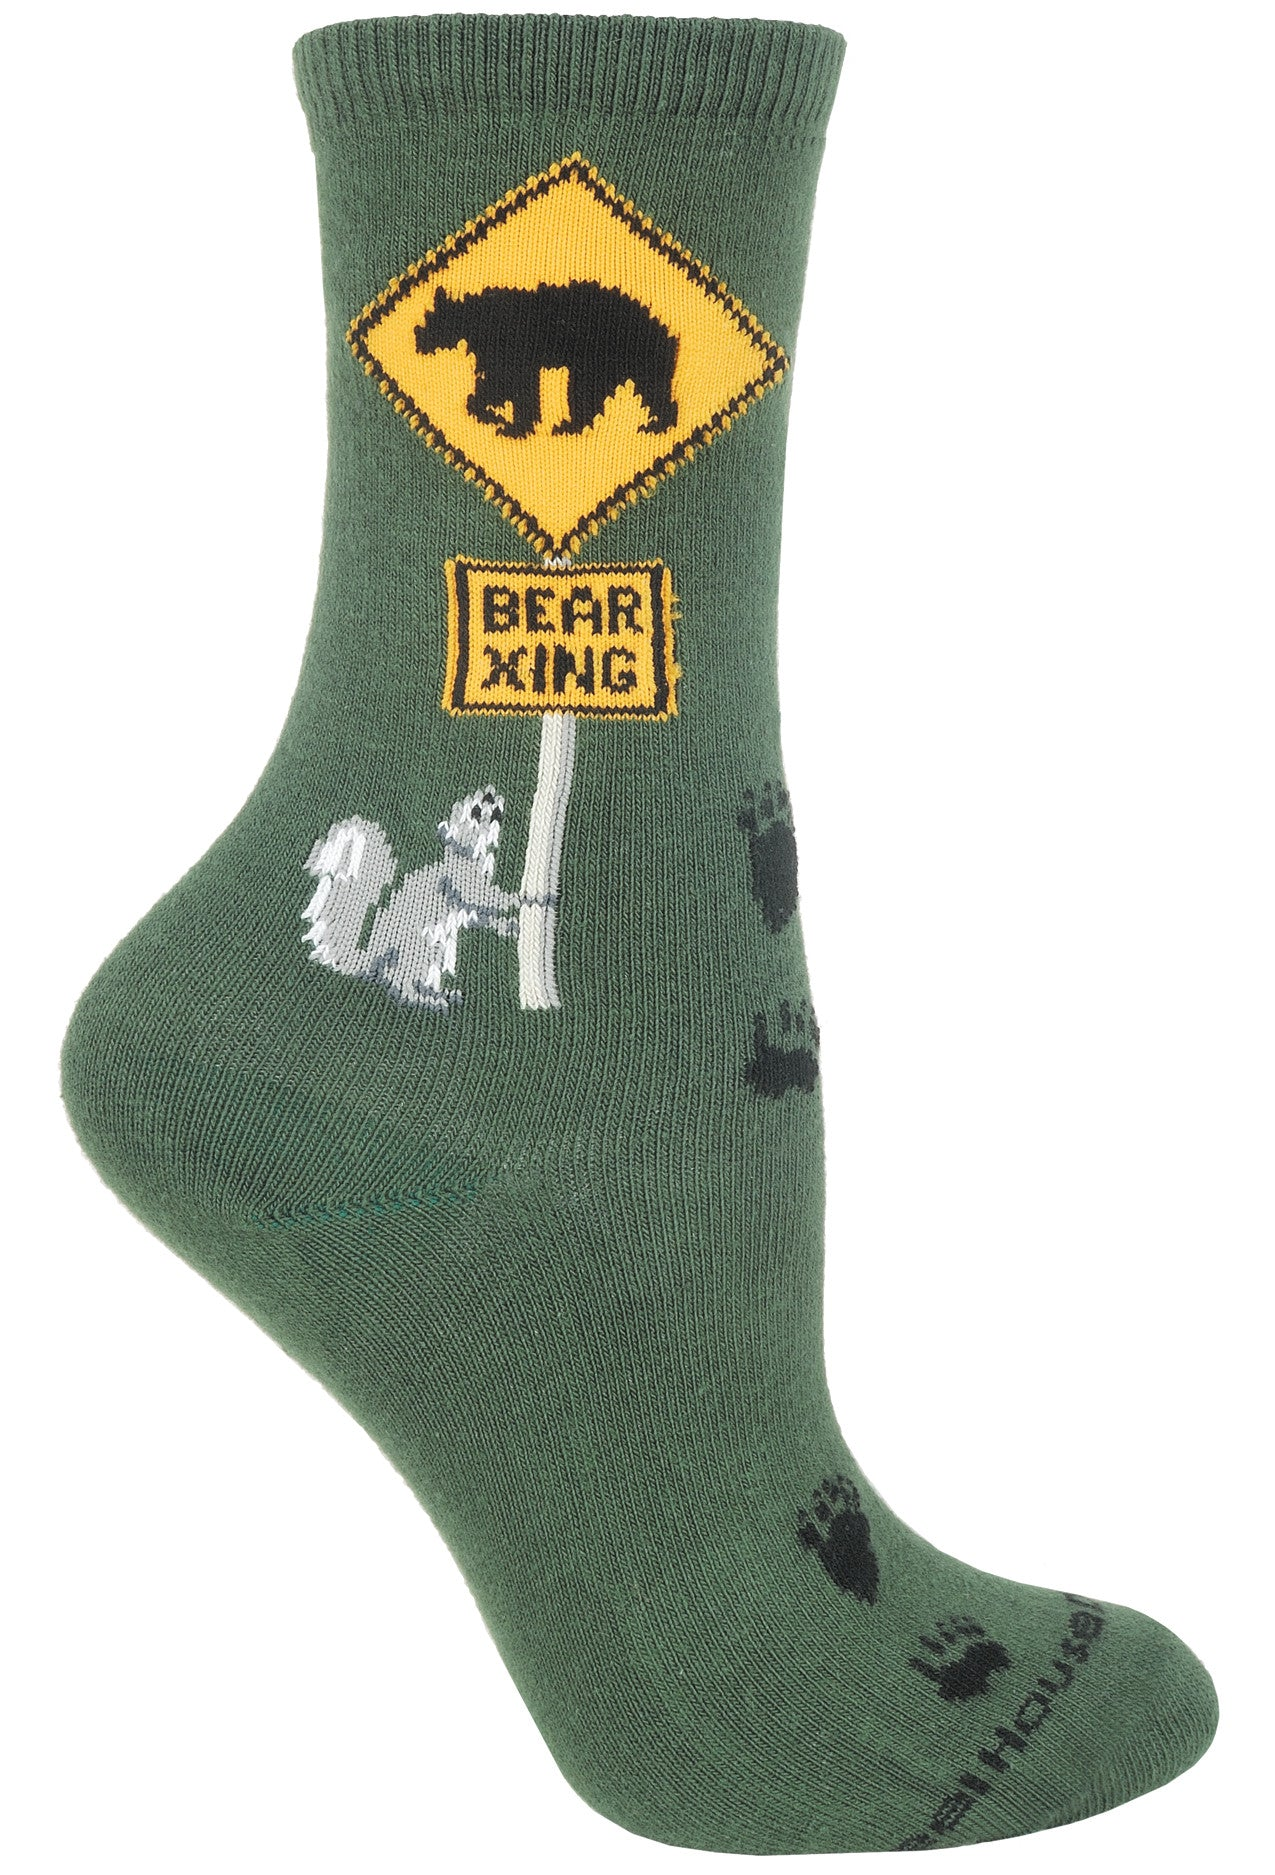 Bear Xing on Hunter Socks